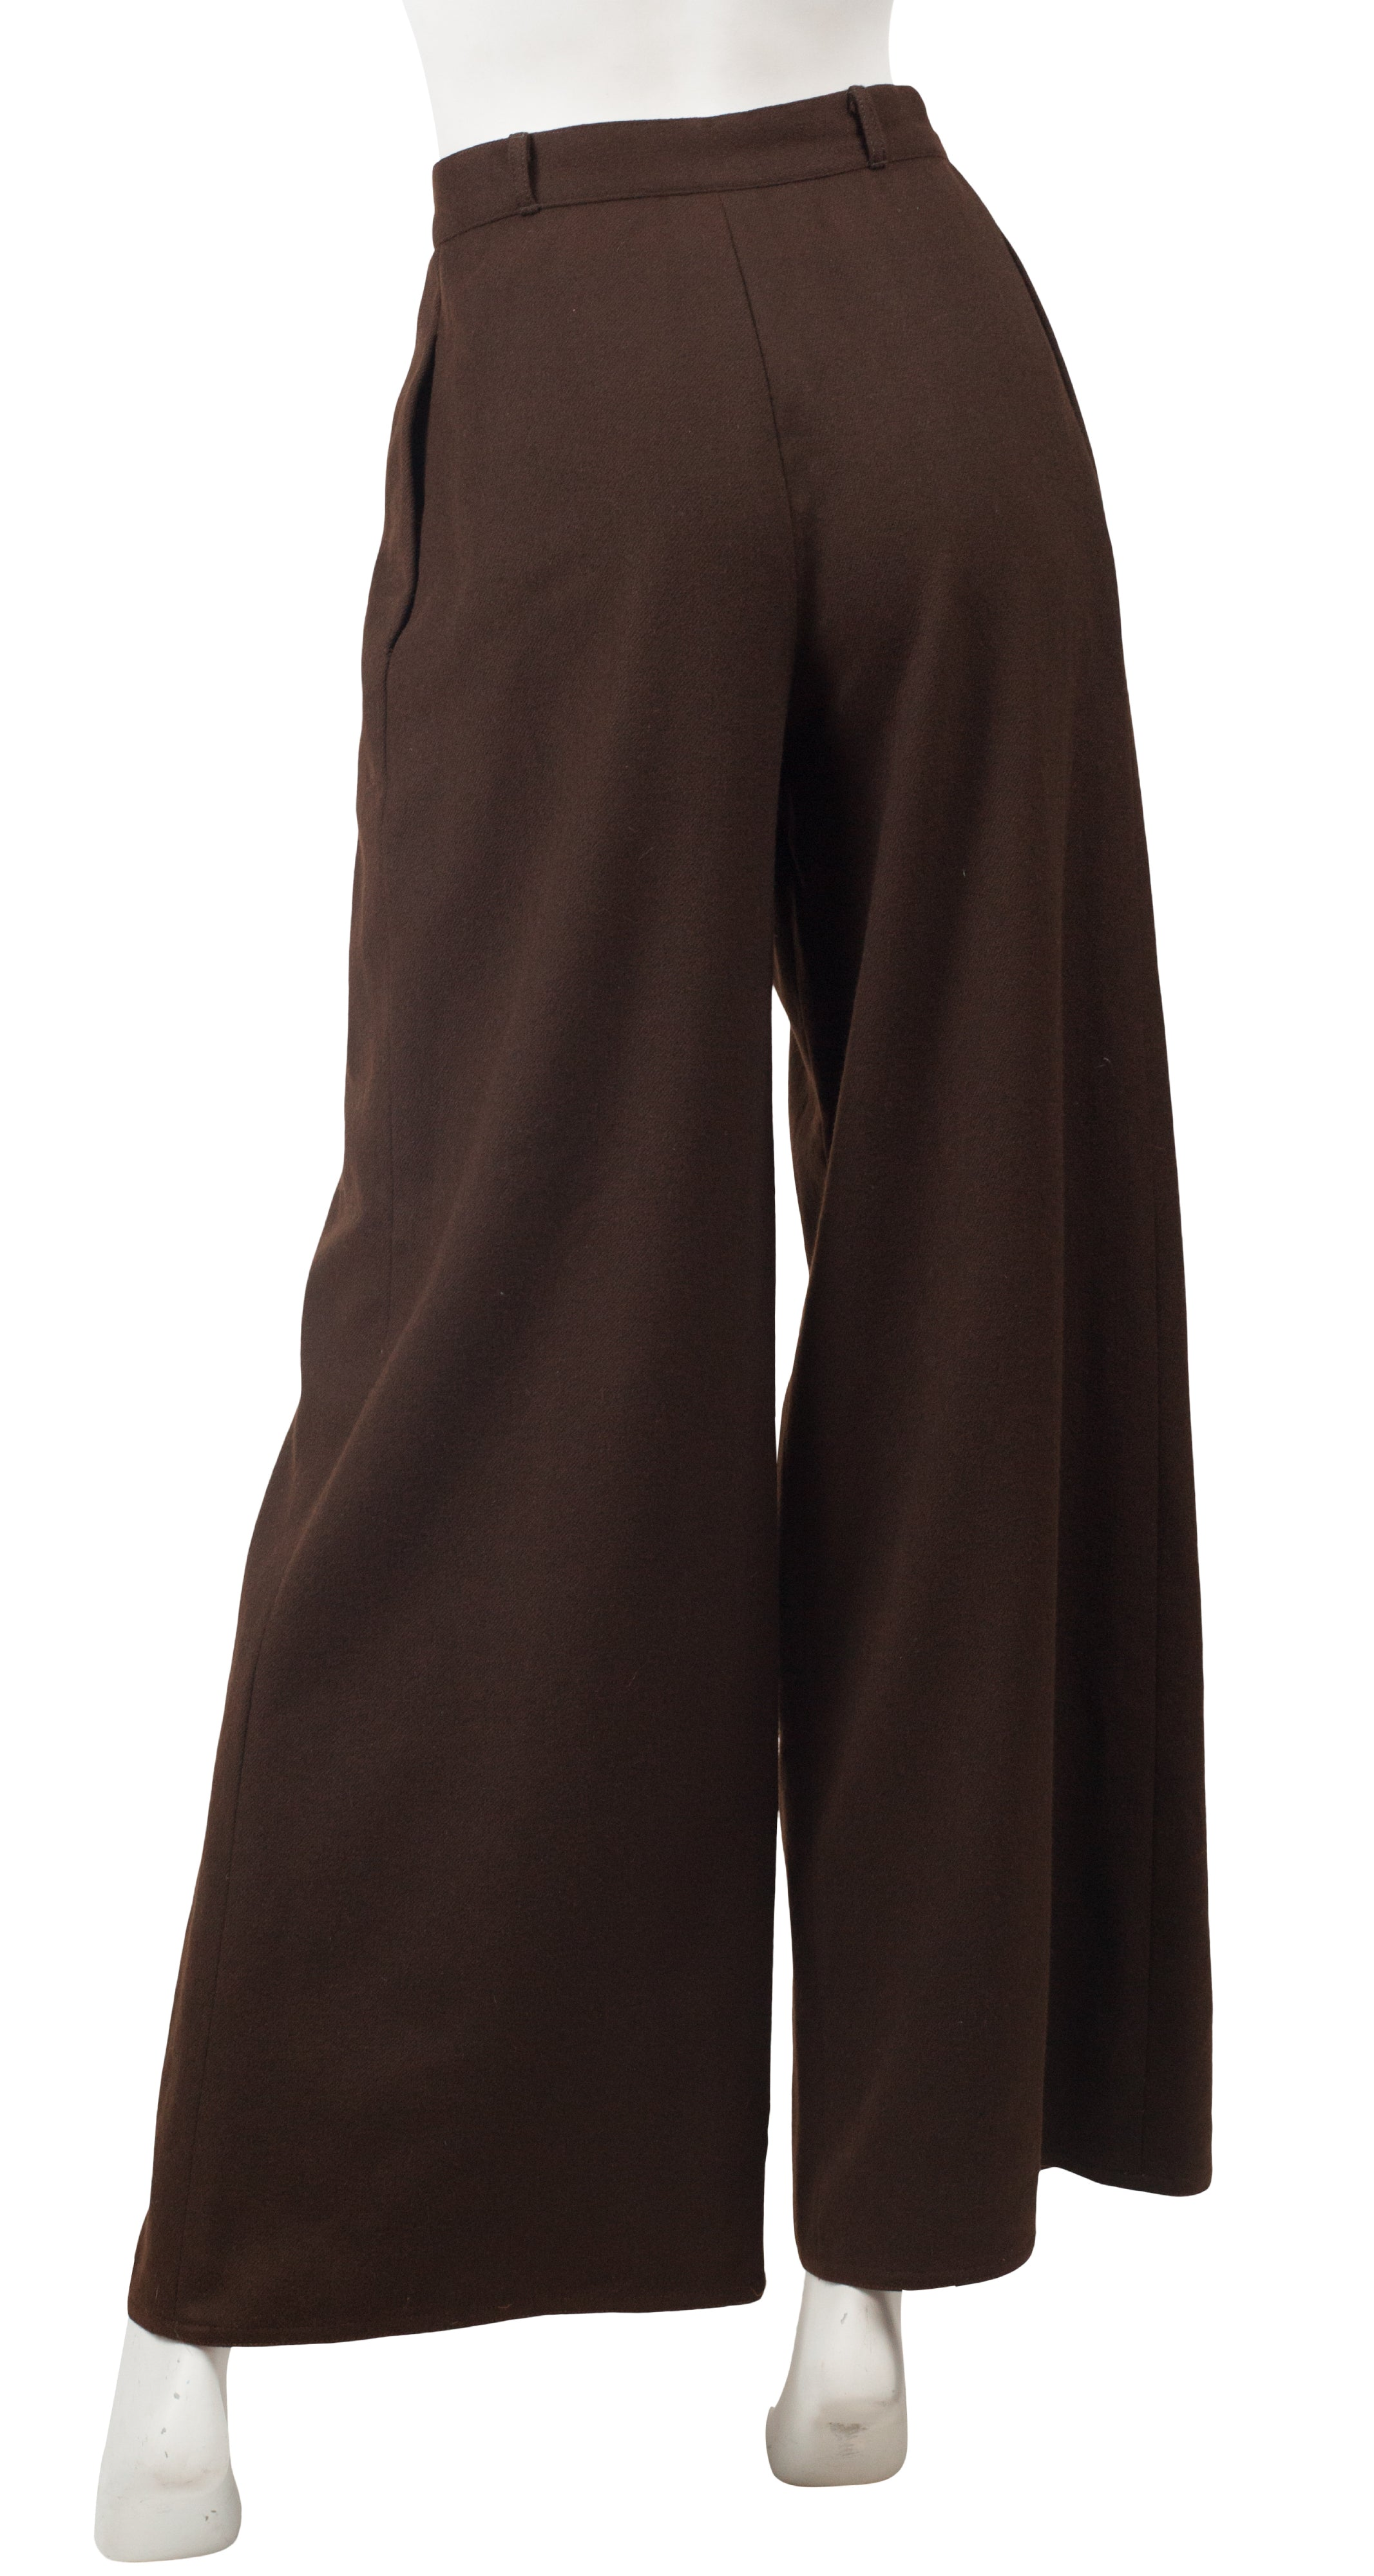 1970s Beene Bag Brown Wool High-Waisted Wide Leg Trousers